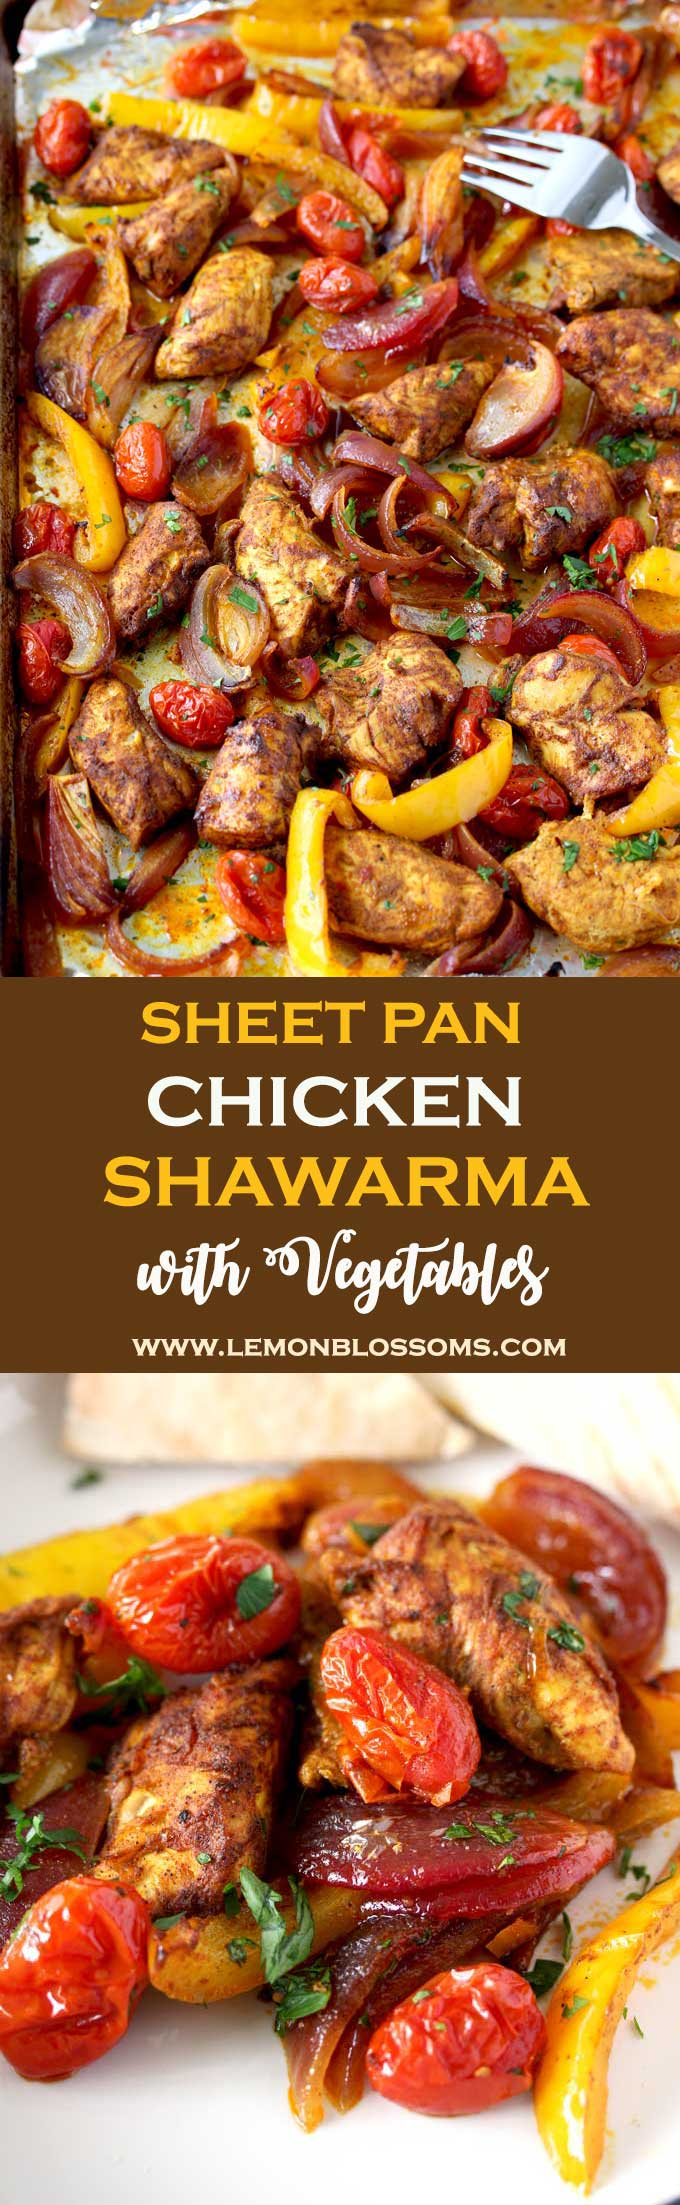 This Middle Eastern inspired Sheet Pan Chicken Shawarma with Vegetables is light, healthy and delicious.  The best part is this tasty one pan meal is made in 25 minutes! #onepanmeal #chicken